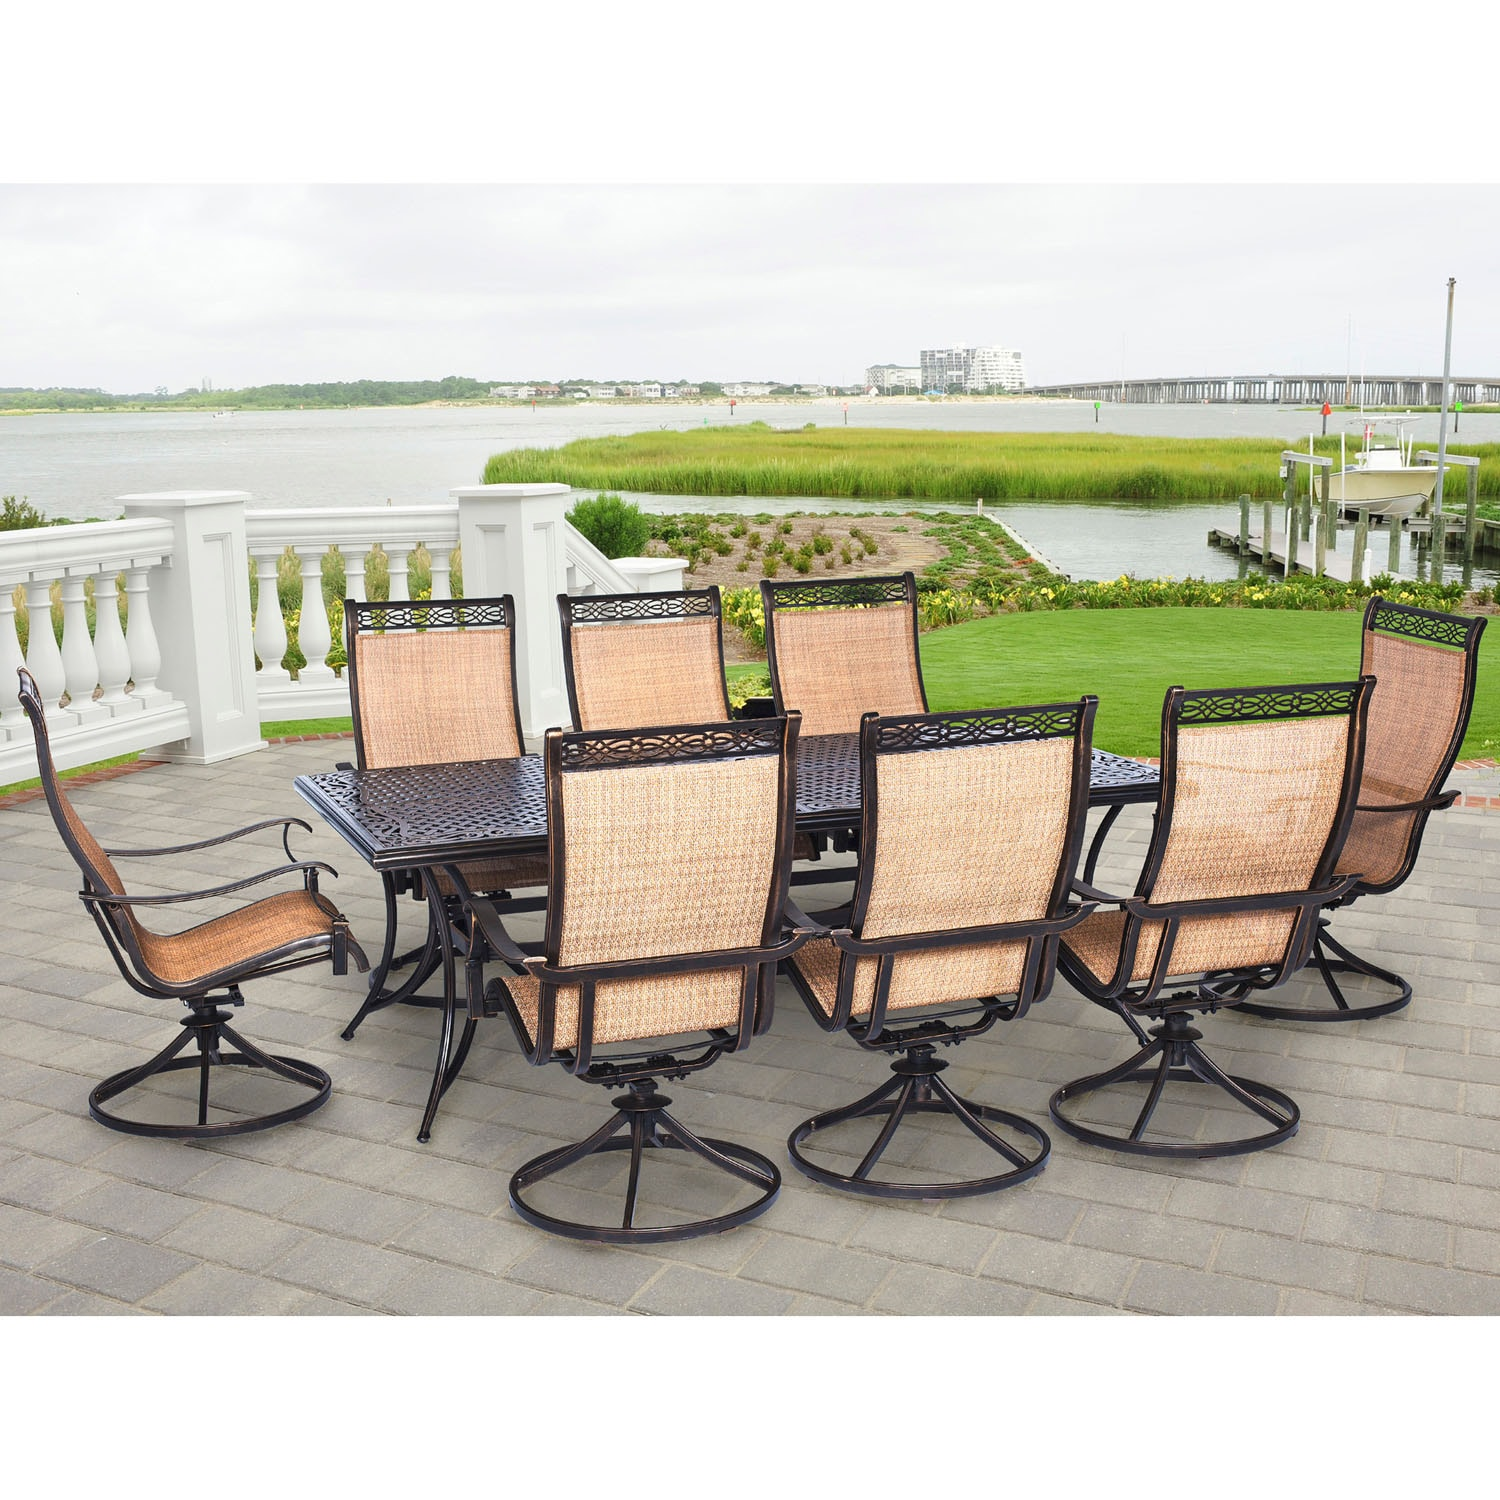 9 Piece Outdoor Dining Set Hanover Outdoor Mandn9pcsw 8 Manor 9 Piece Outdoor Dining Set With Eight Swivel Rockers